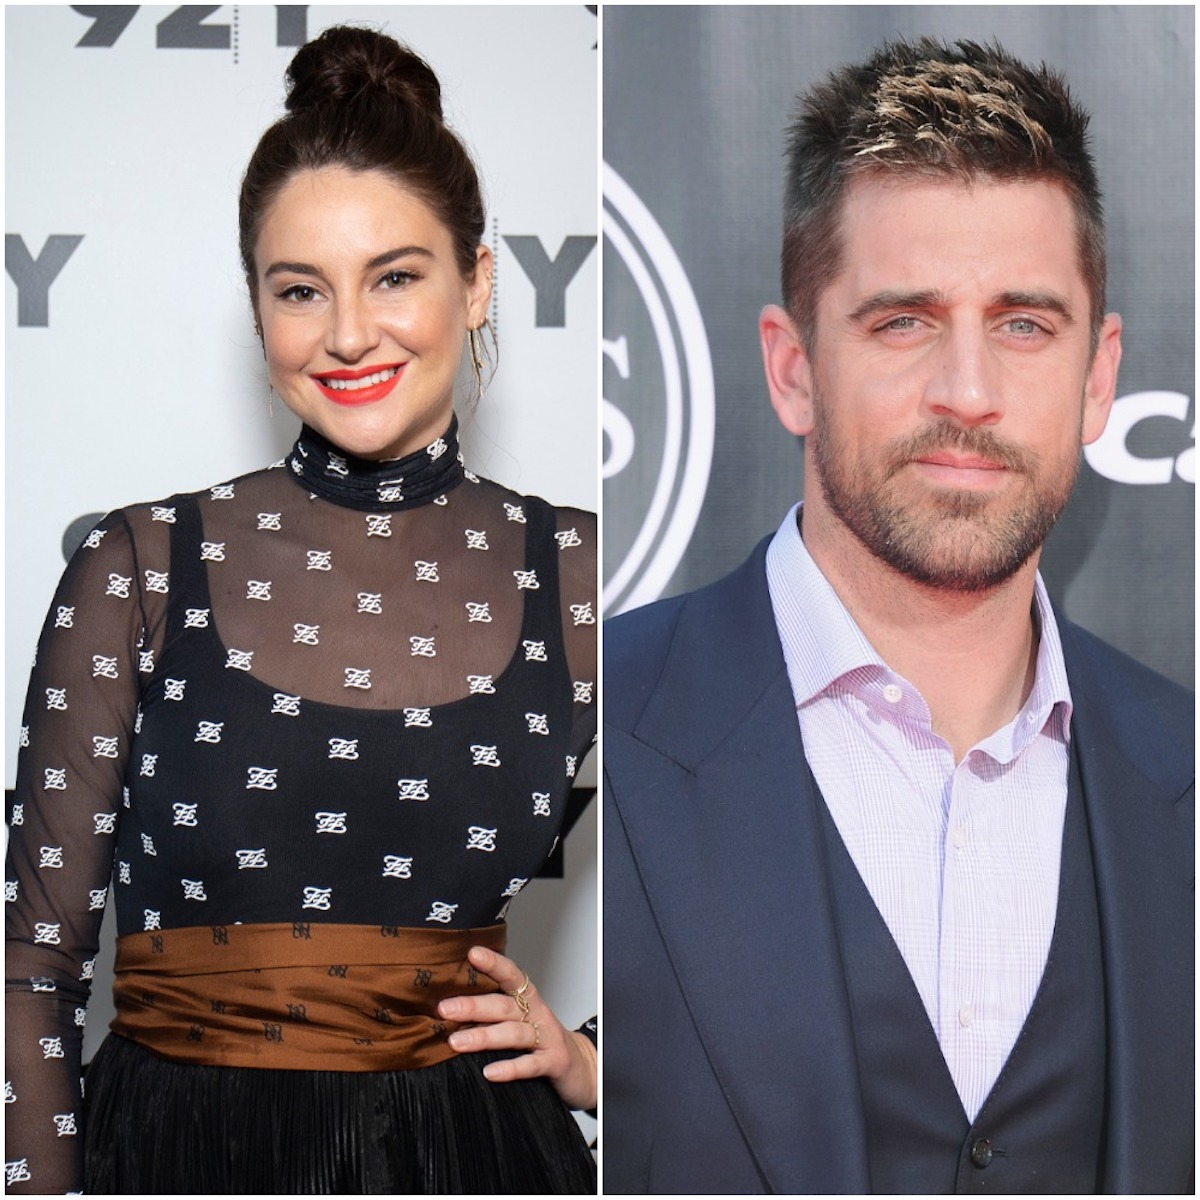 Shailene Woodley smiles on the red carpet and Aaron Rodgers looks into camera